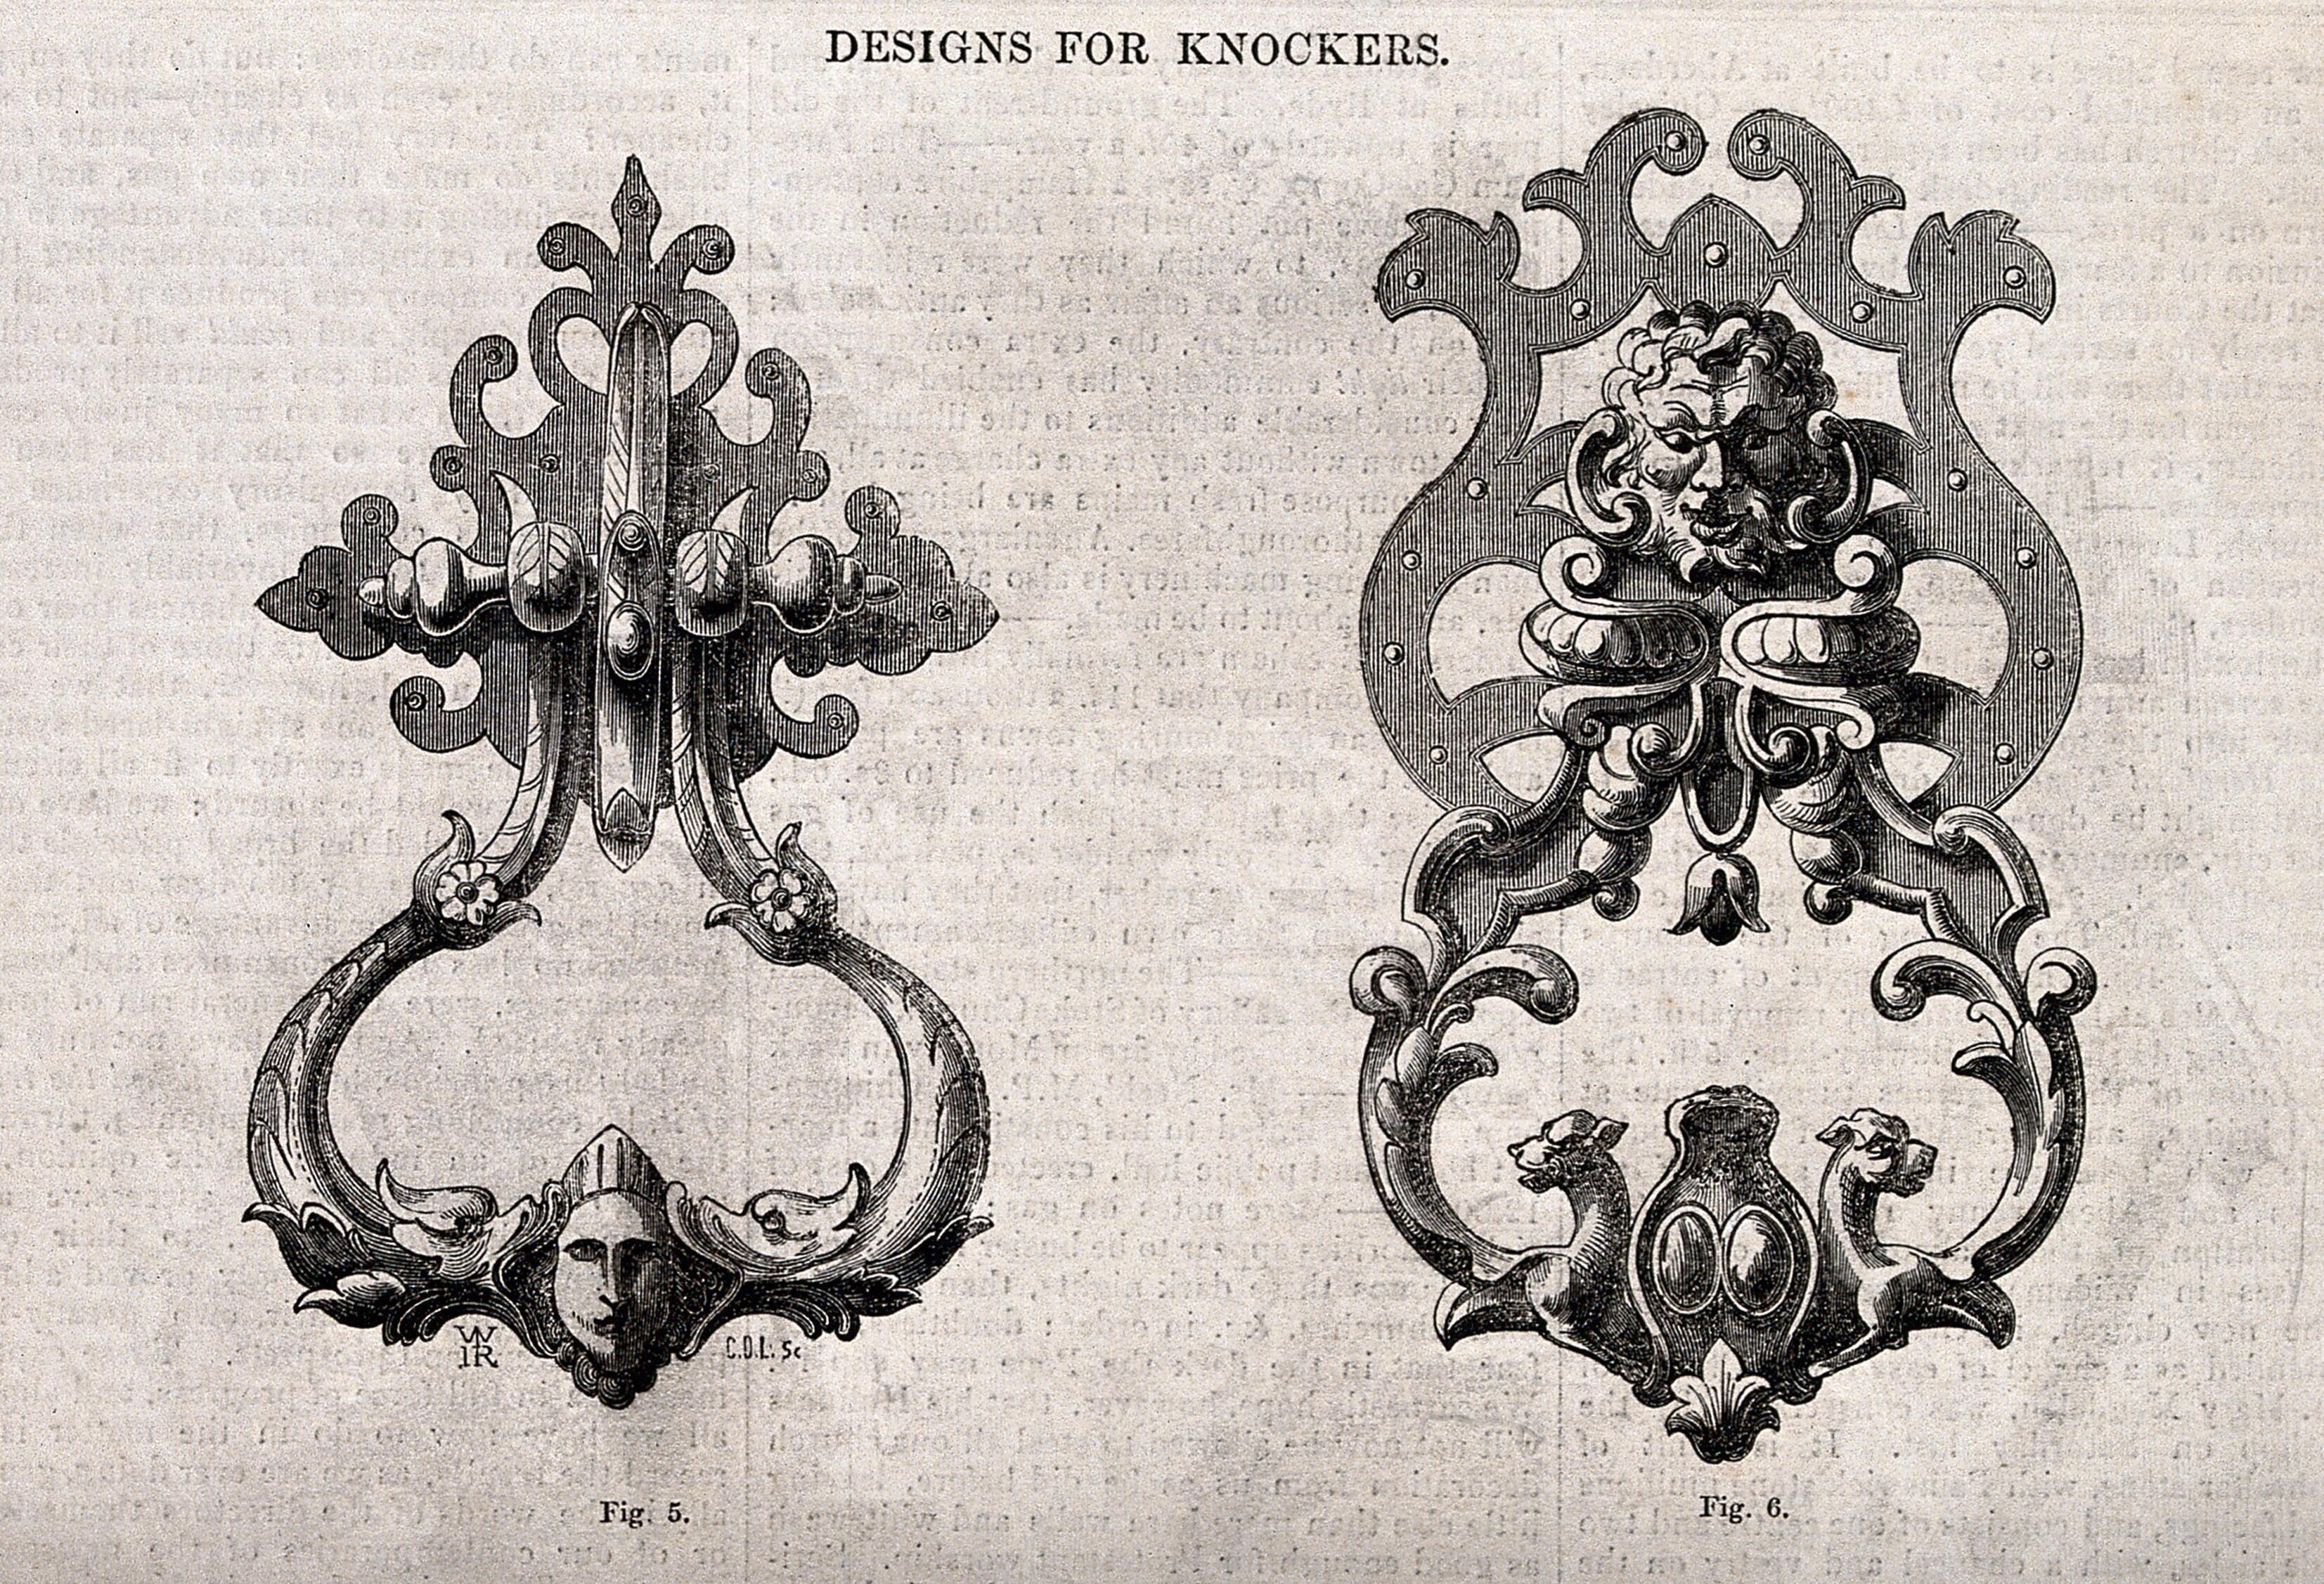 Architecture Two Designs For Door Knockers Wood Engraving By C D Laing After W H Rogers 1850 Wellcome Collection